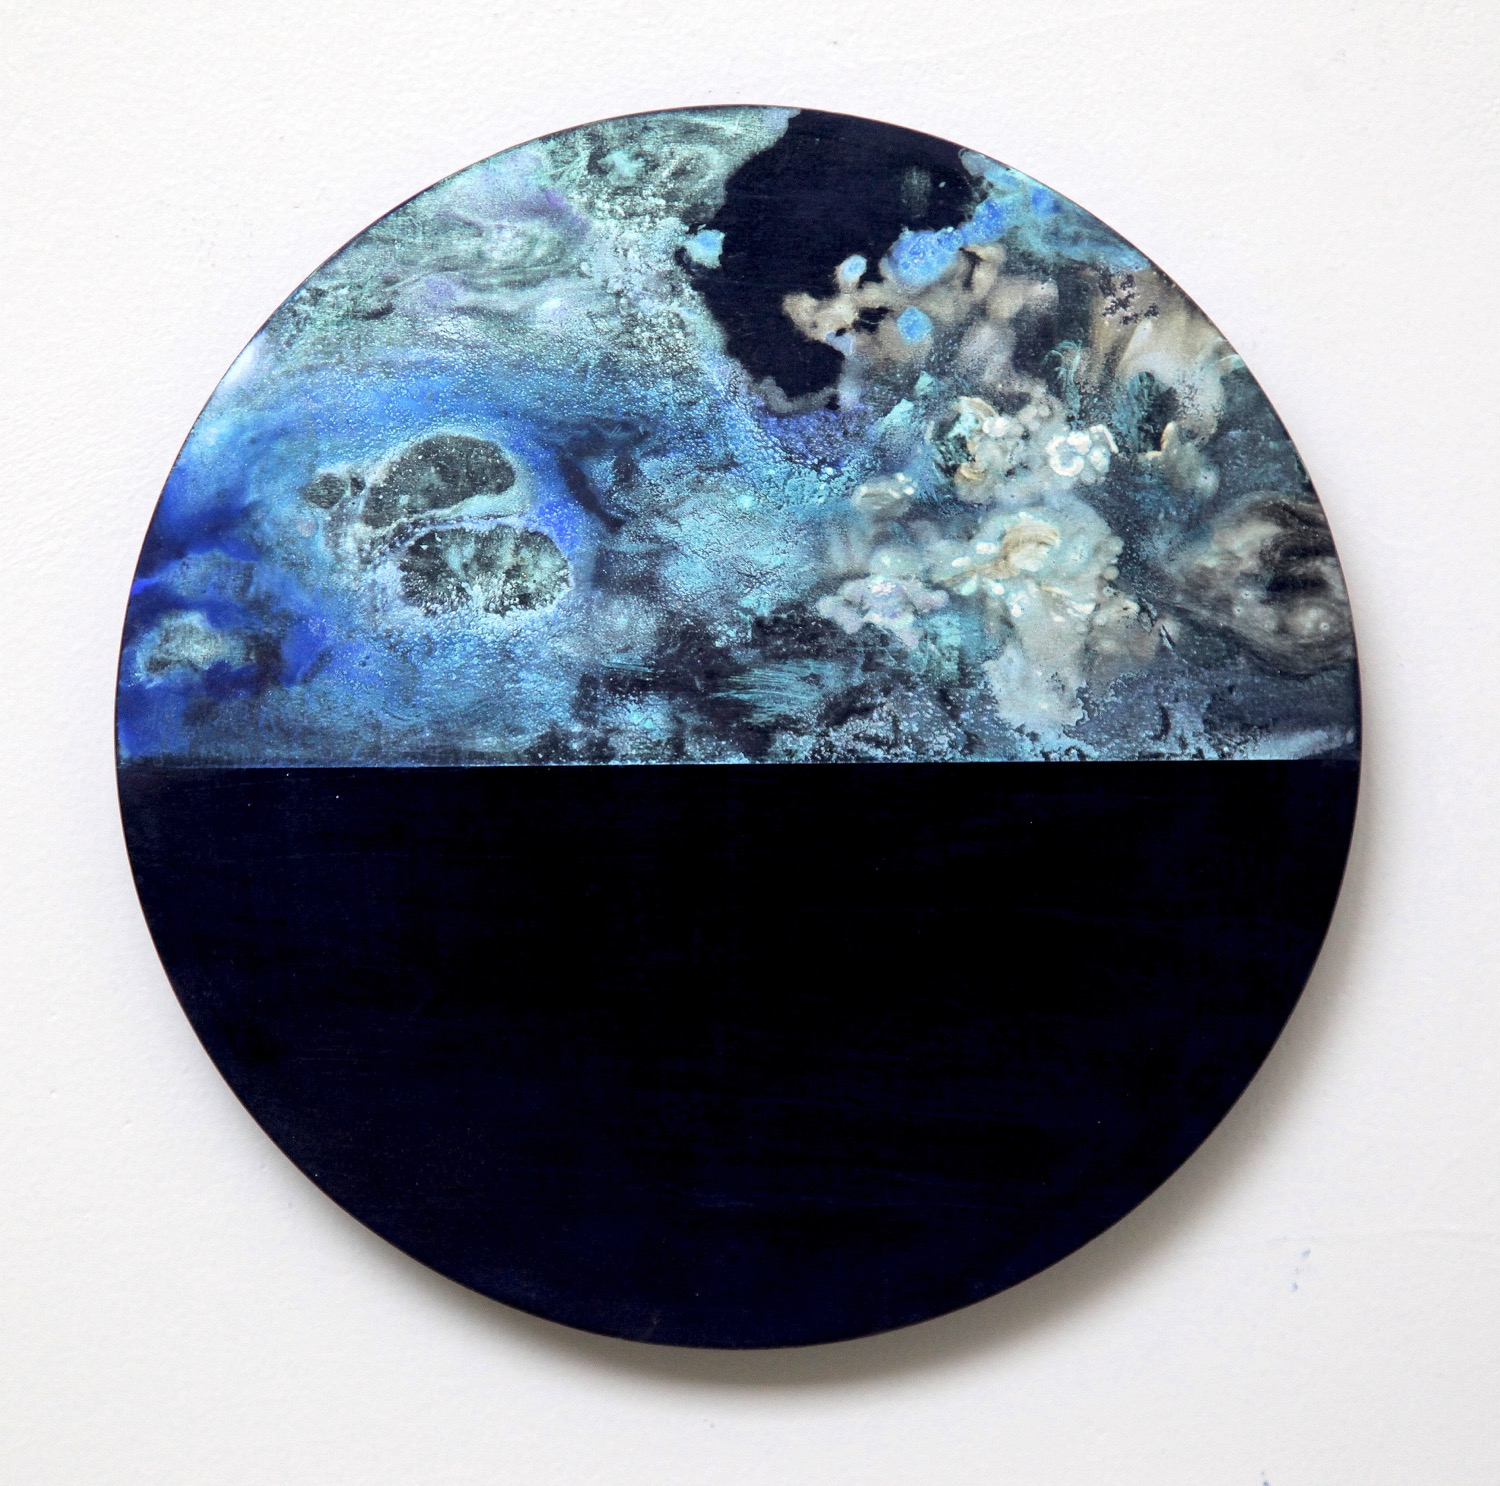 T18  2015  Acrylic and metal powder on board  27.2cm diameter